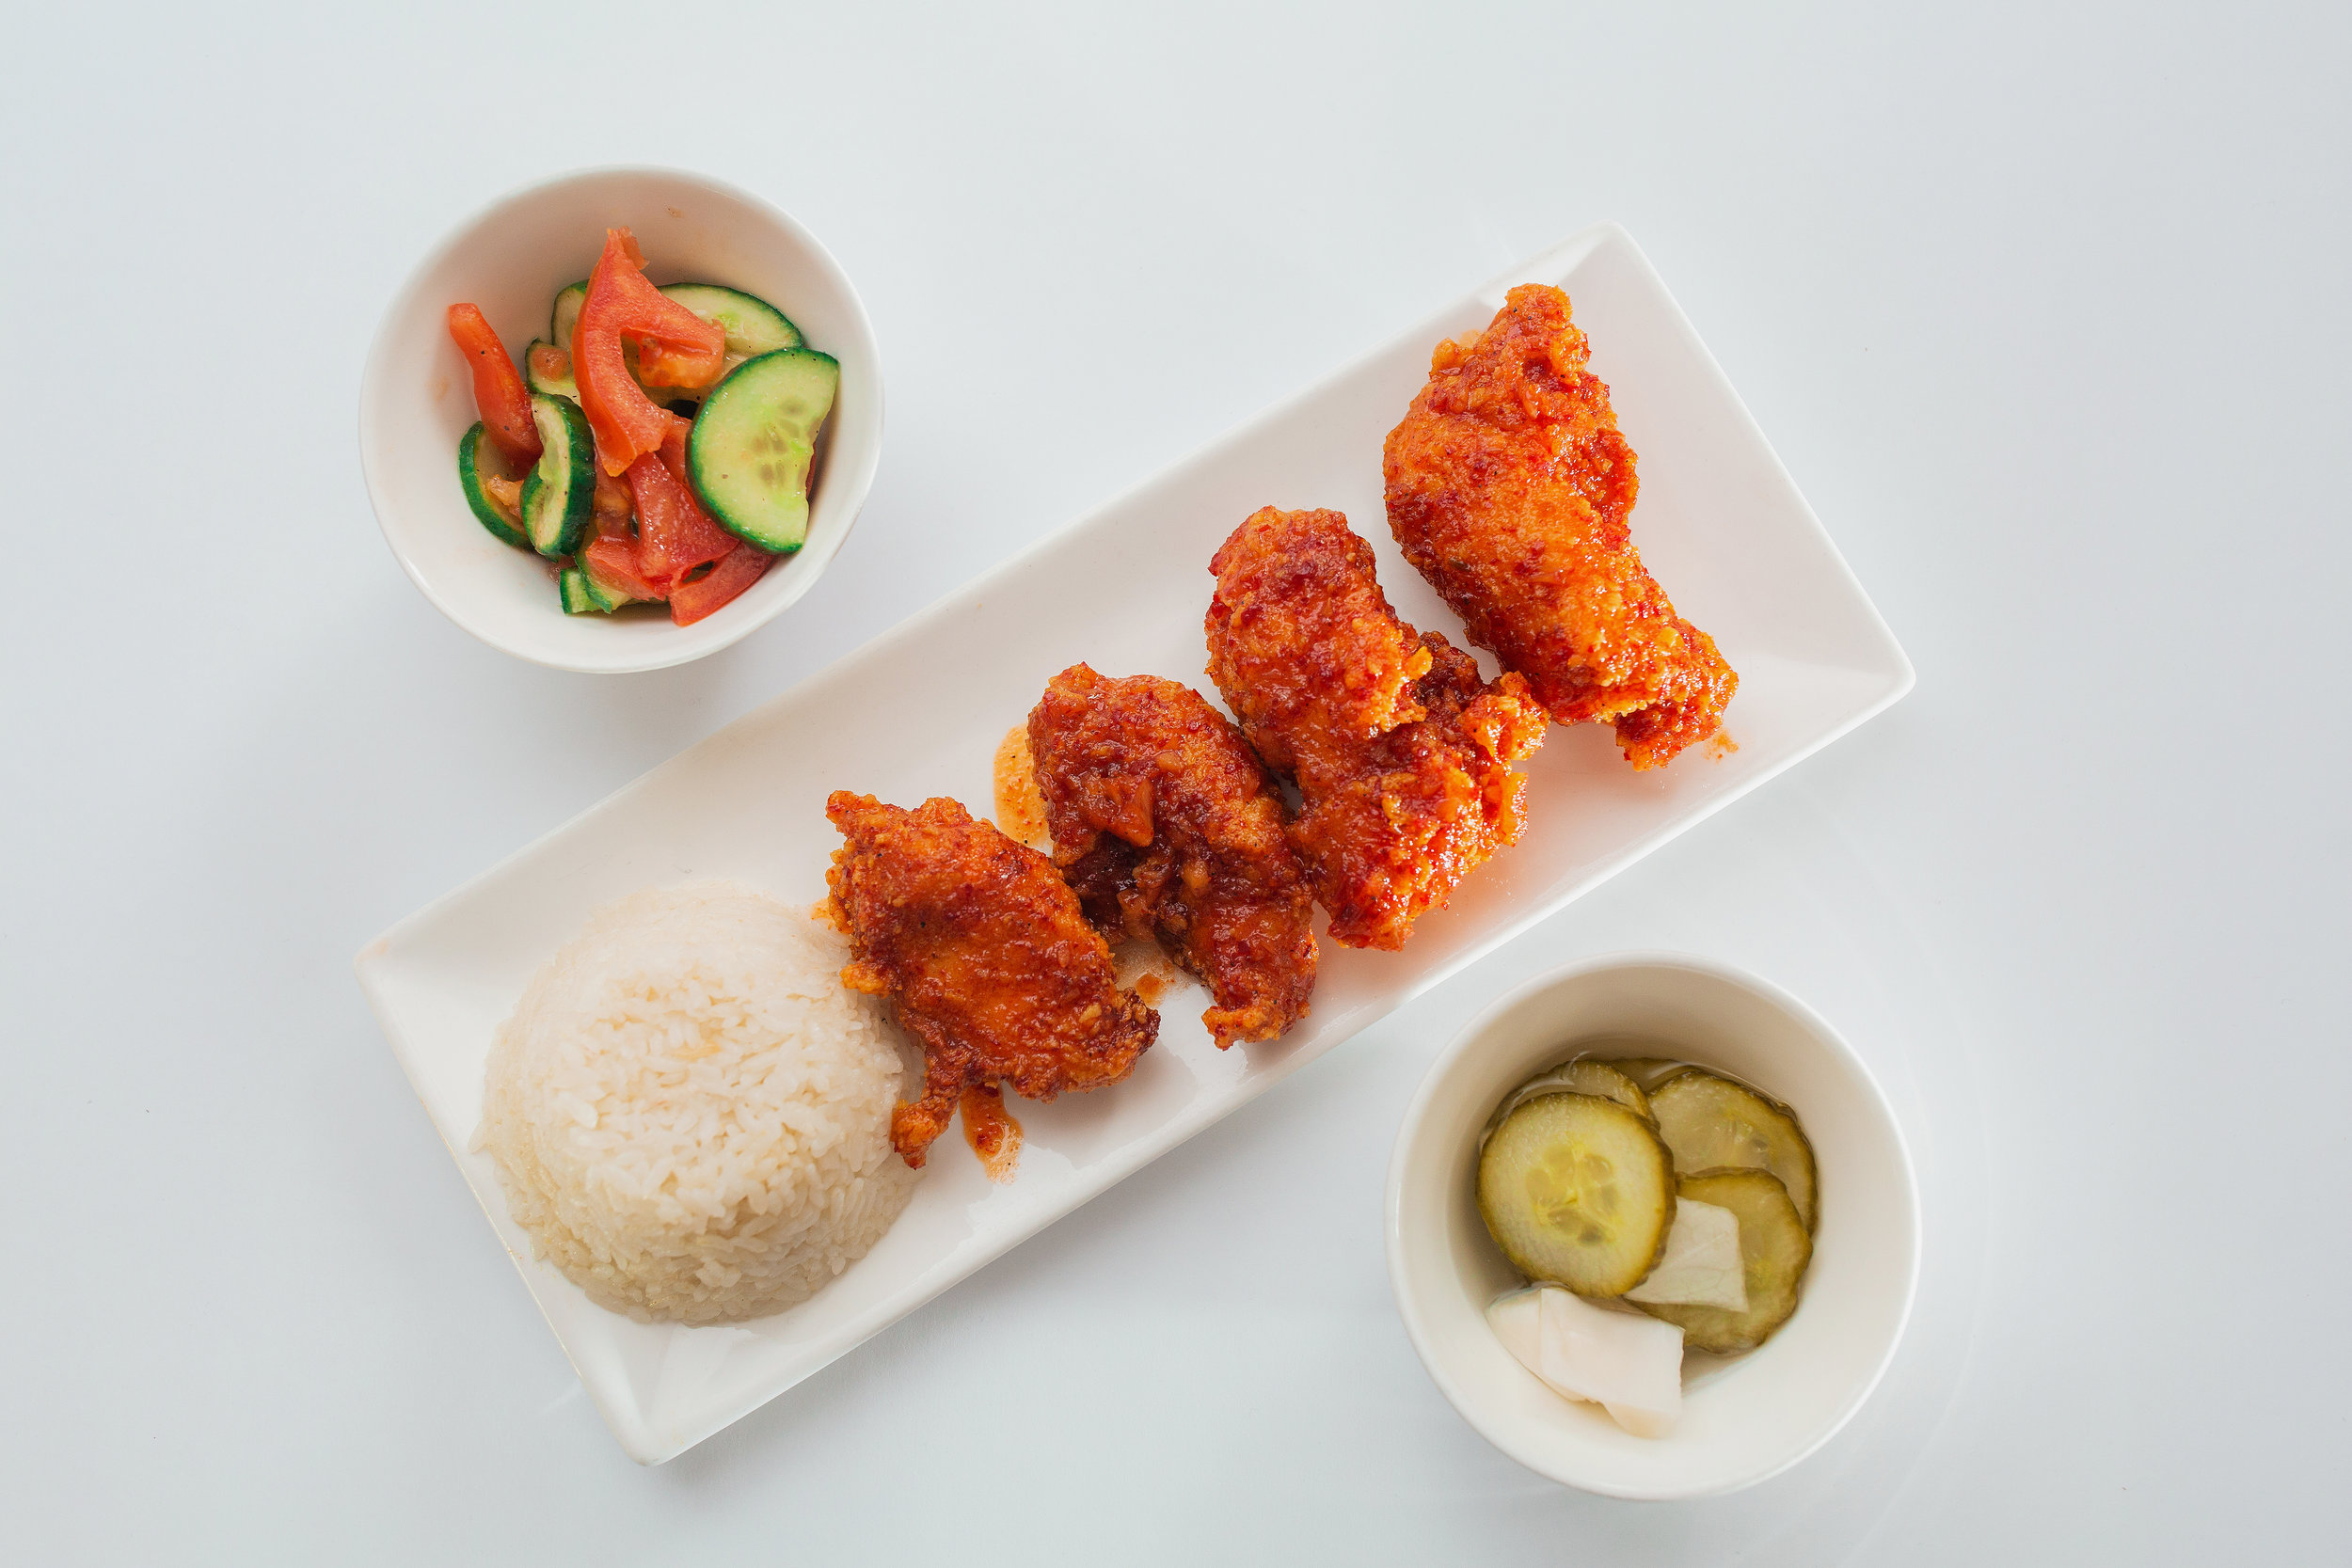 Lunch set C - 4 chicken breasts with korean spicy sauce, fresh salad, white rice and pickles290kgs